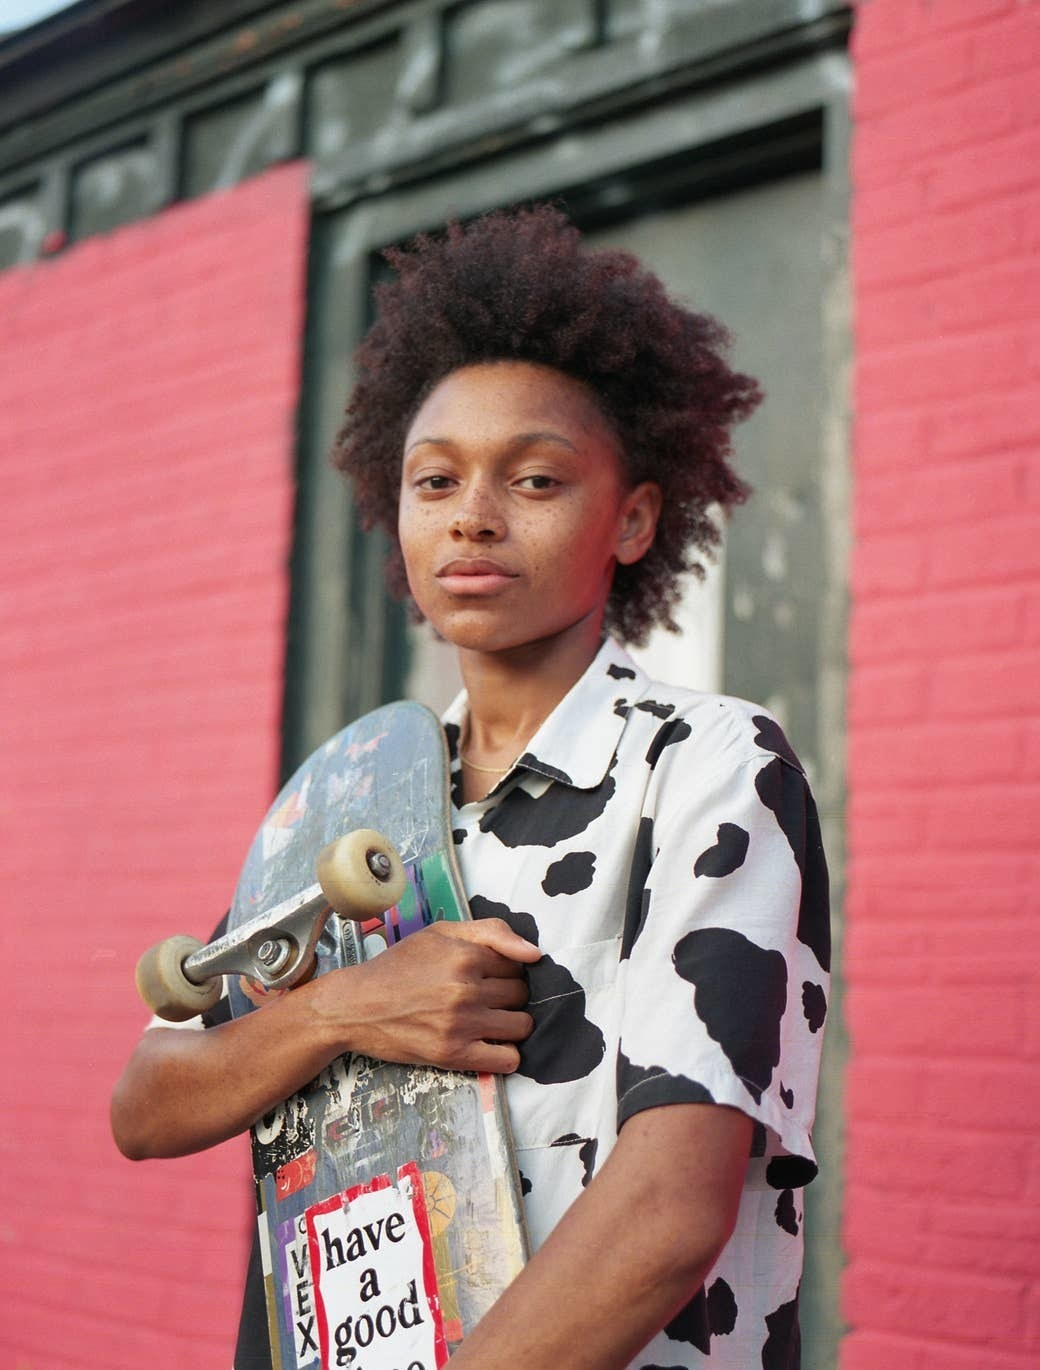 A young girl in a cow-print shirt holding a skateboard in front of a painted brick wall